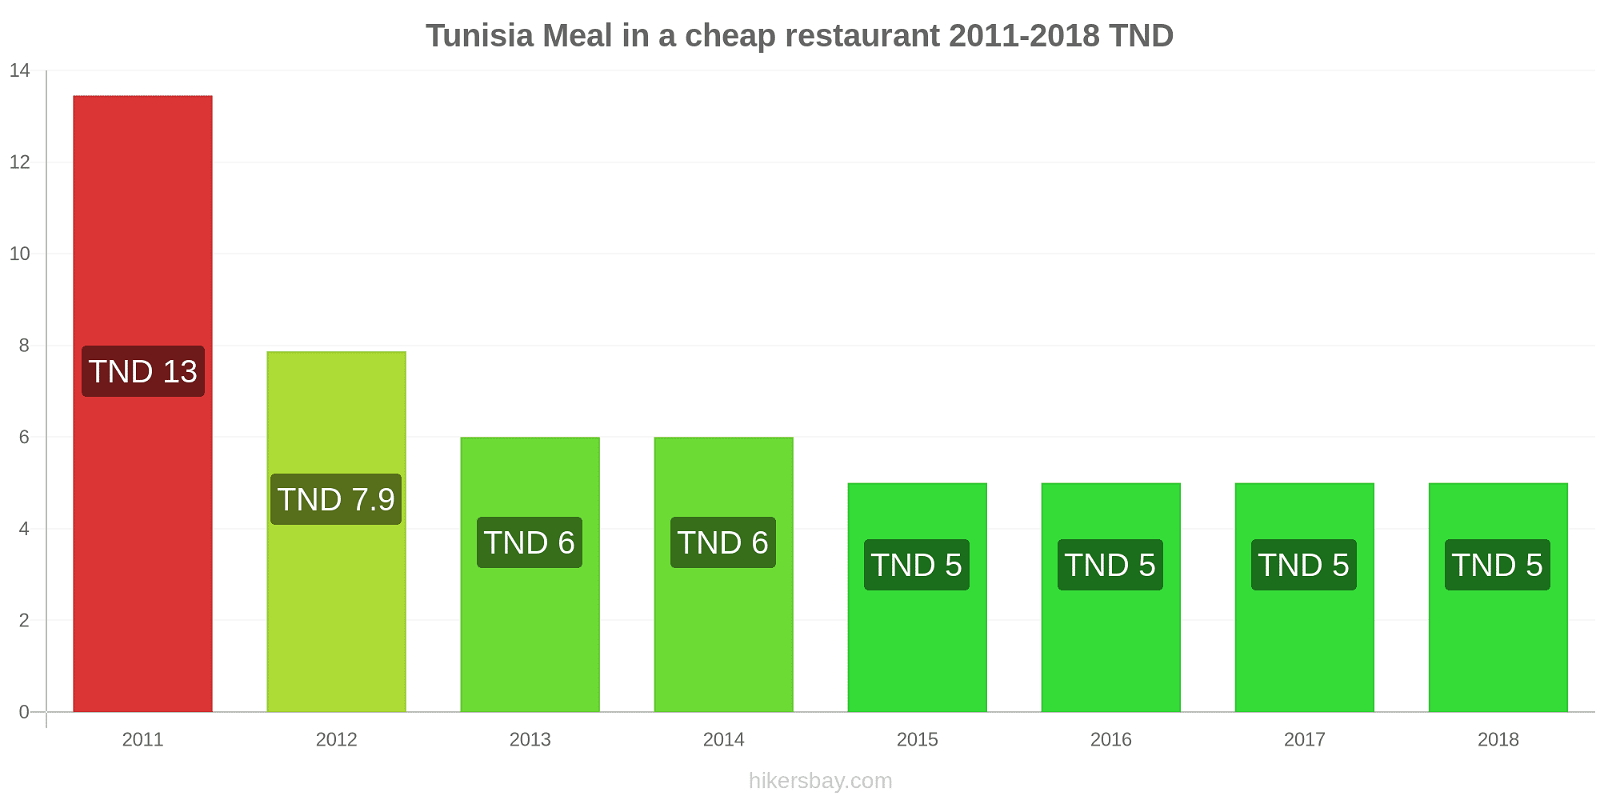 Tunisia price changes Meal in a cheap restaurant hikersbay.com